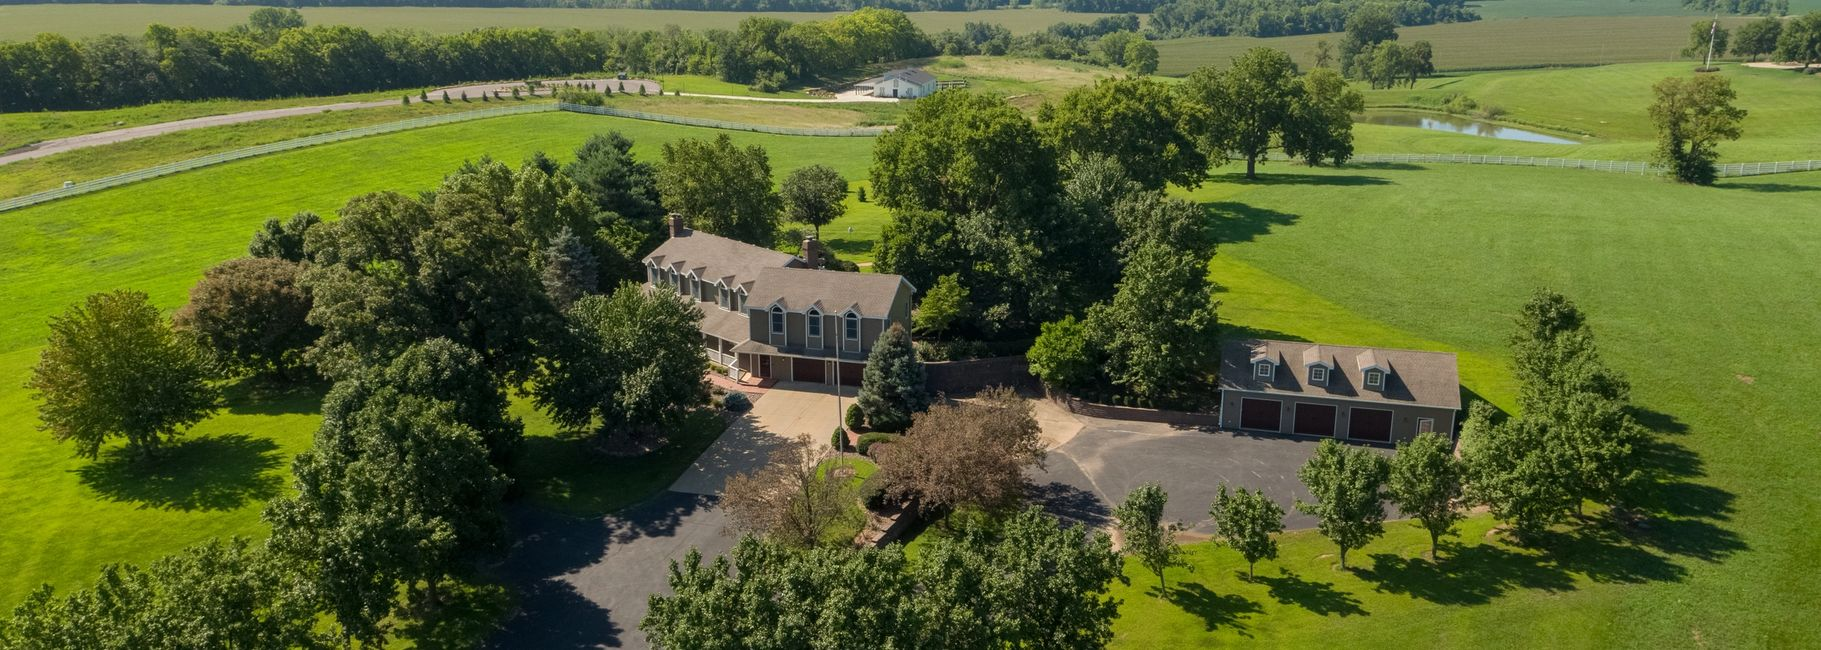 Drone On Demand Aerial Photography Example from Residential Real Estate Listing for United Country.